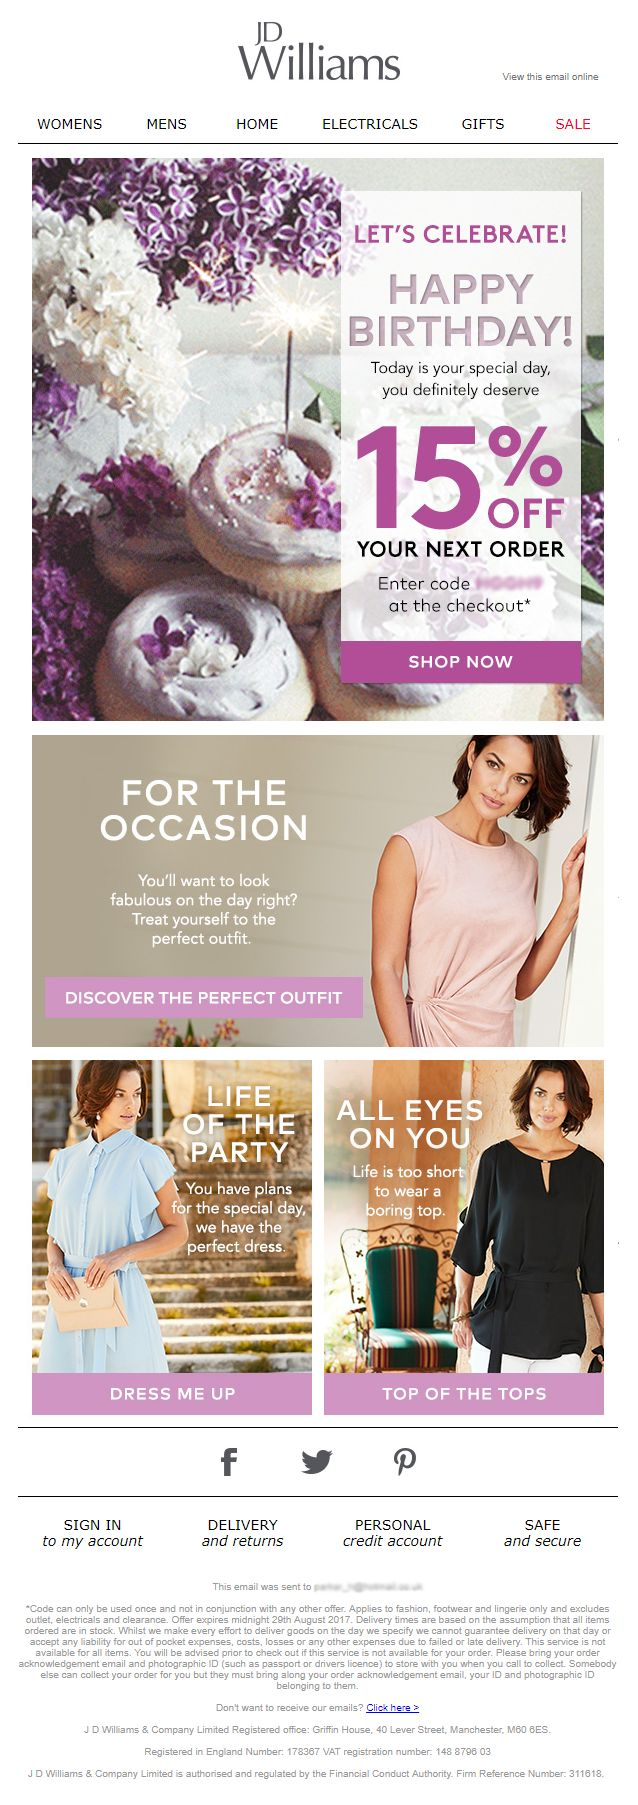 39 best birthday emails images on pinterest birthday email birthday email from jd williams with coupon discount code emailmarketing email marketing